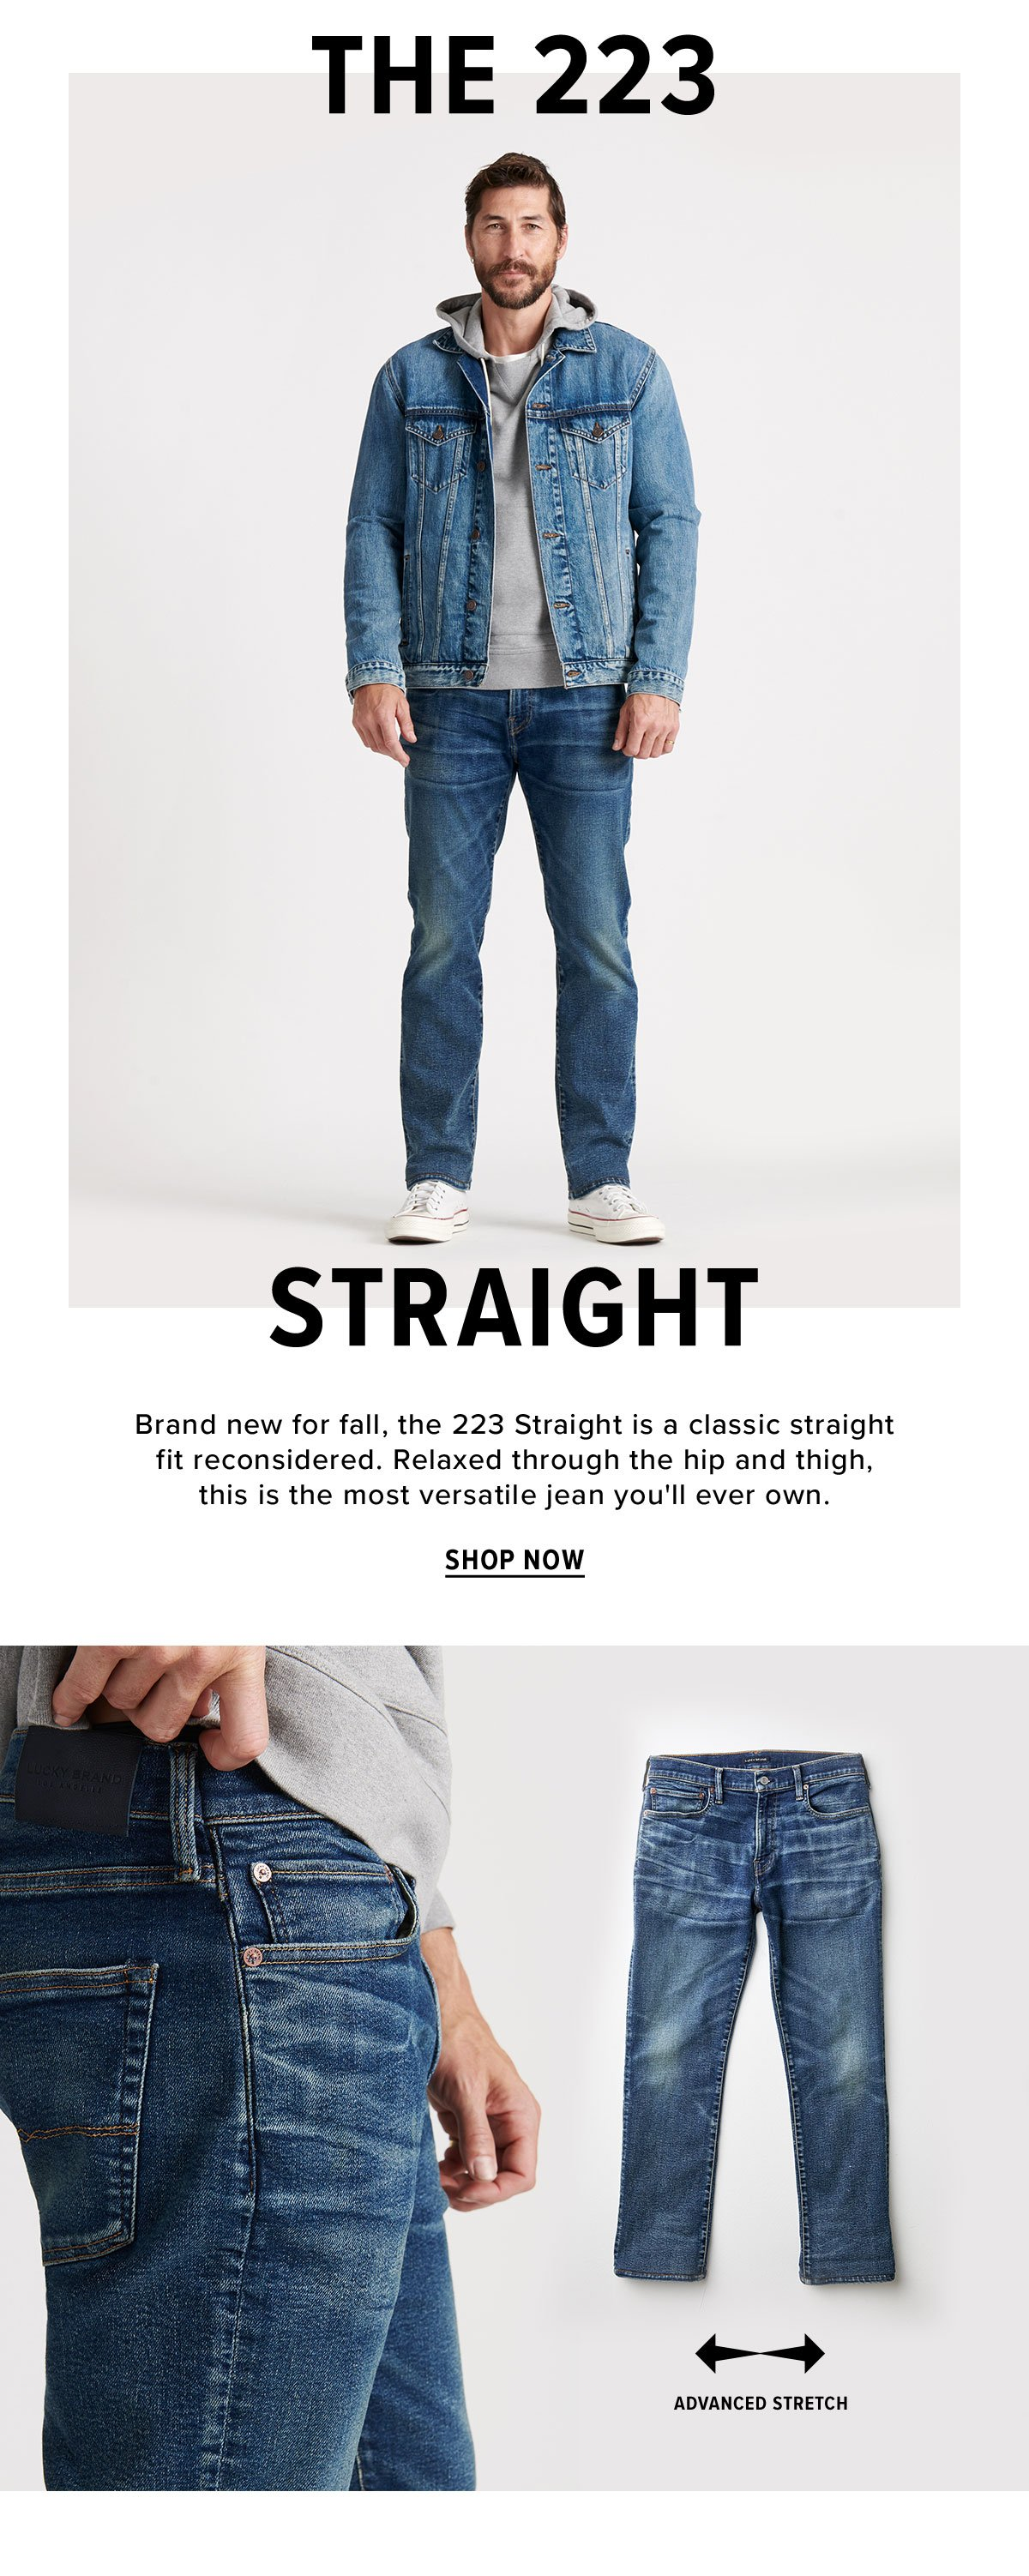 The 223 Straigh - Shop Now